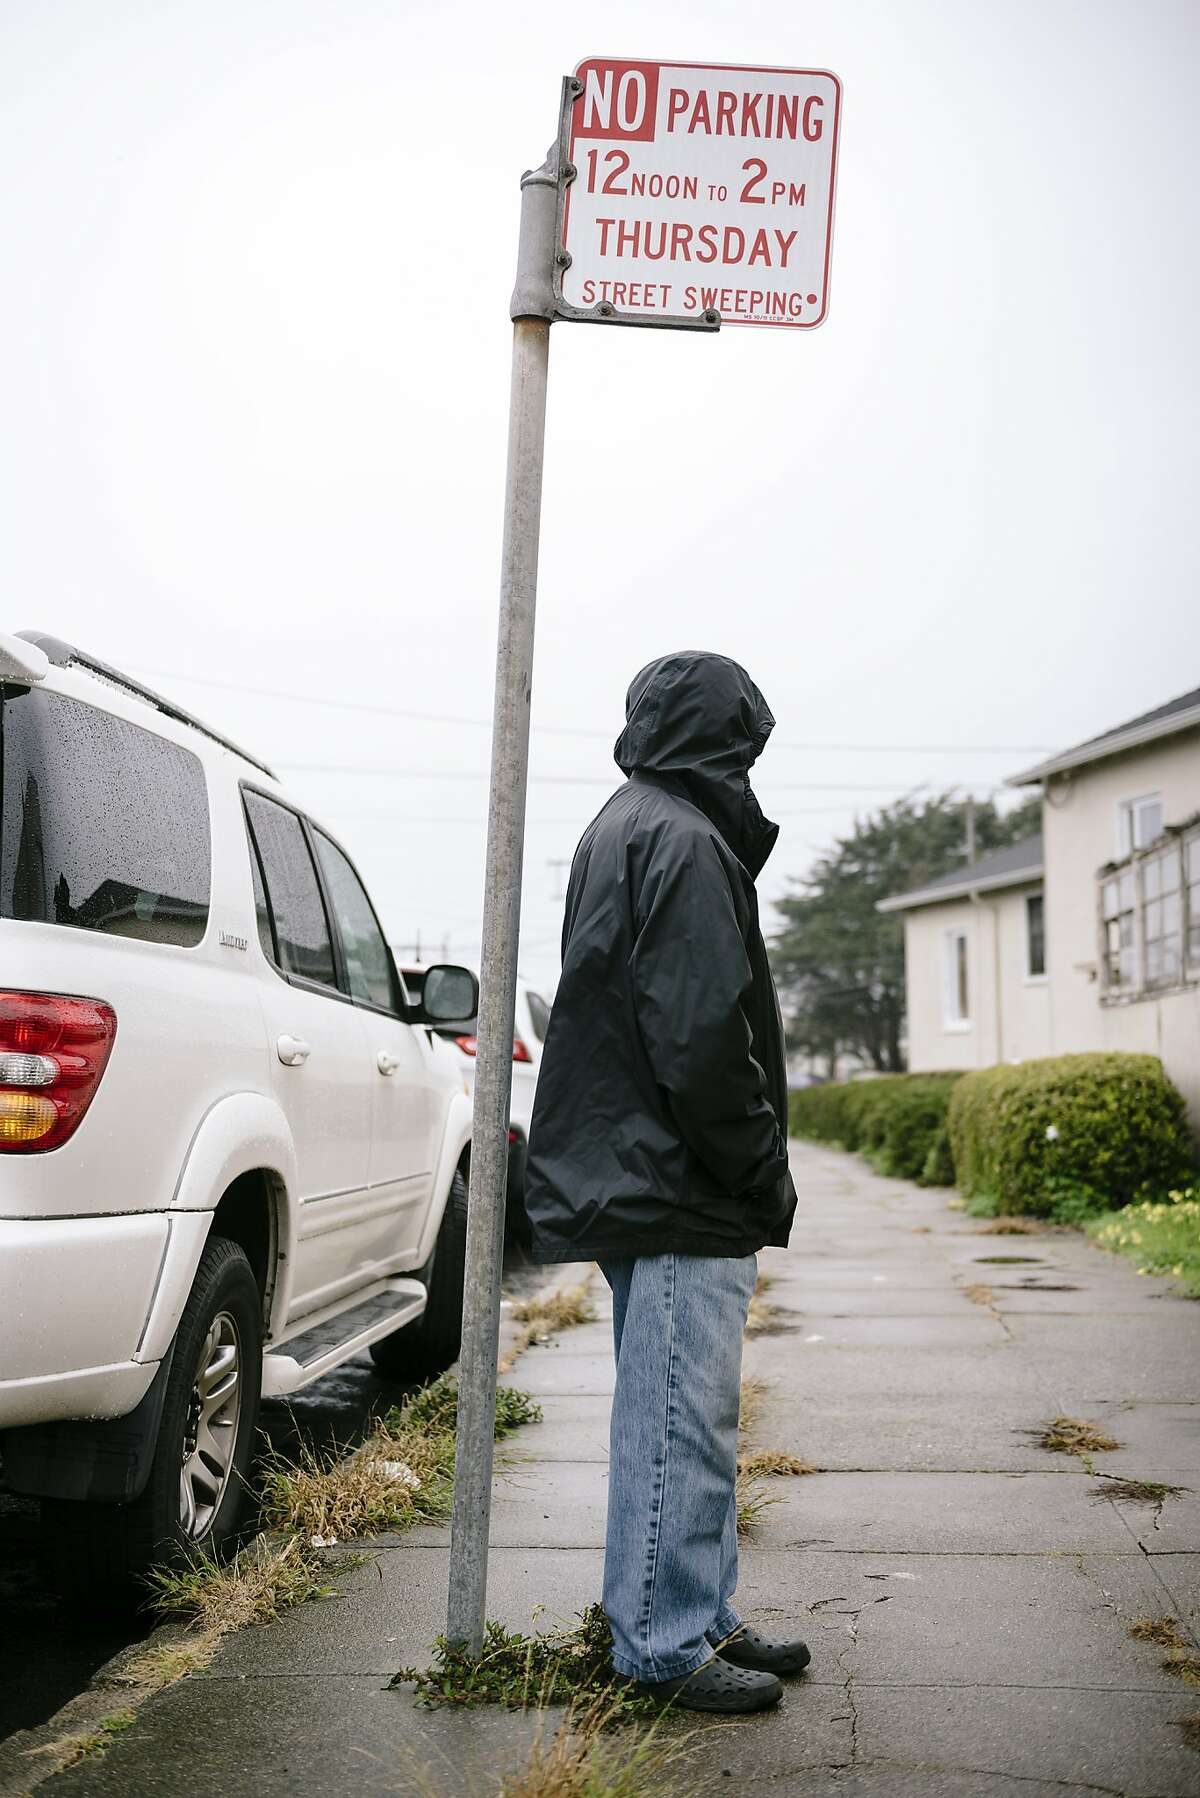 Anthony De Guzman stands for a portrait under a street sweeping sign near where left his car parked and received a ticket while he was in the hospital for two weeks after being robbed and stabbed on the steps of his home in San Francisco, Calif, on Tuesday, January 28, 2020.